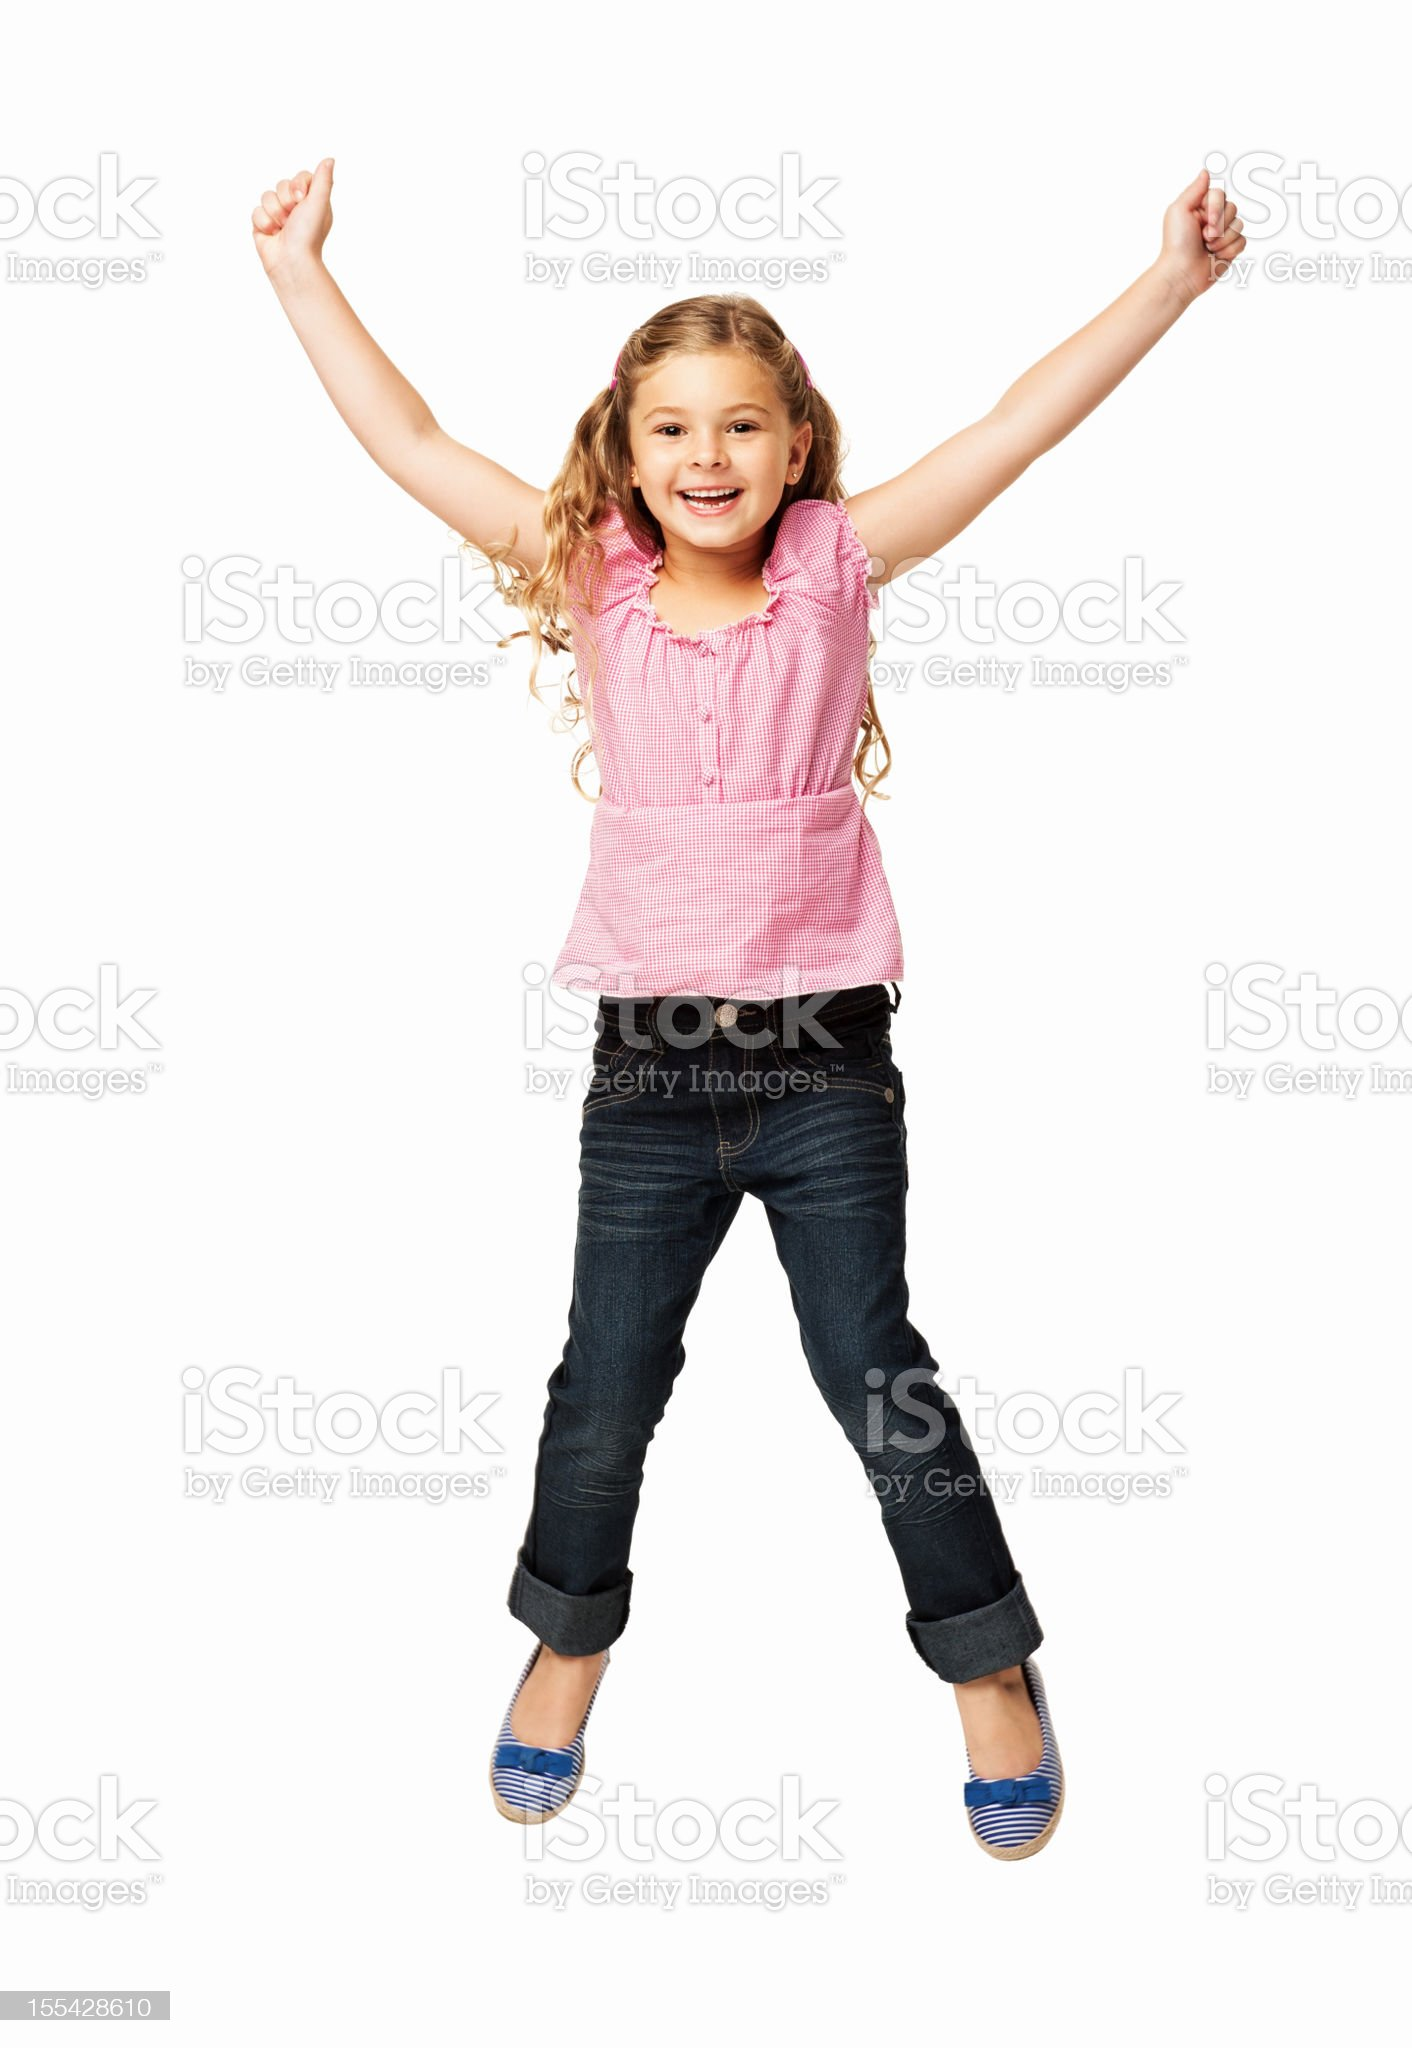 Happy Little Girl Jumping - Isolated royalty-free stock photo